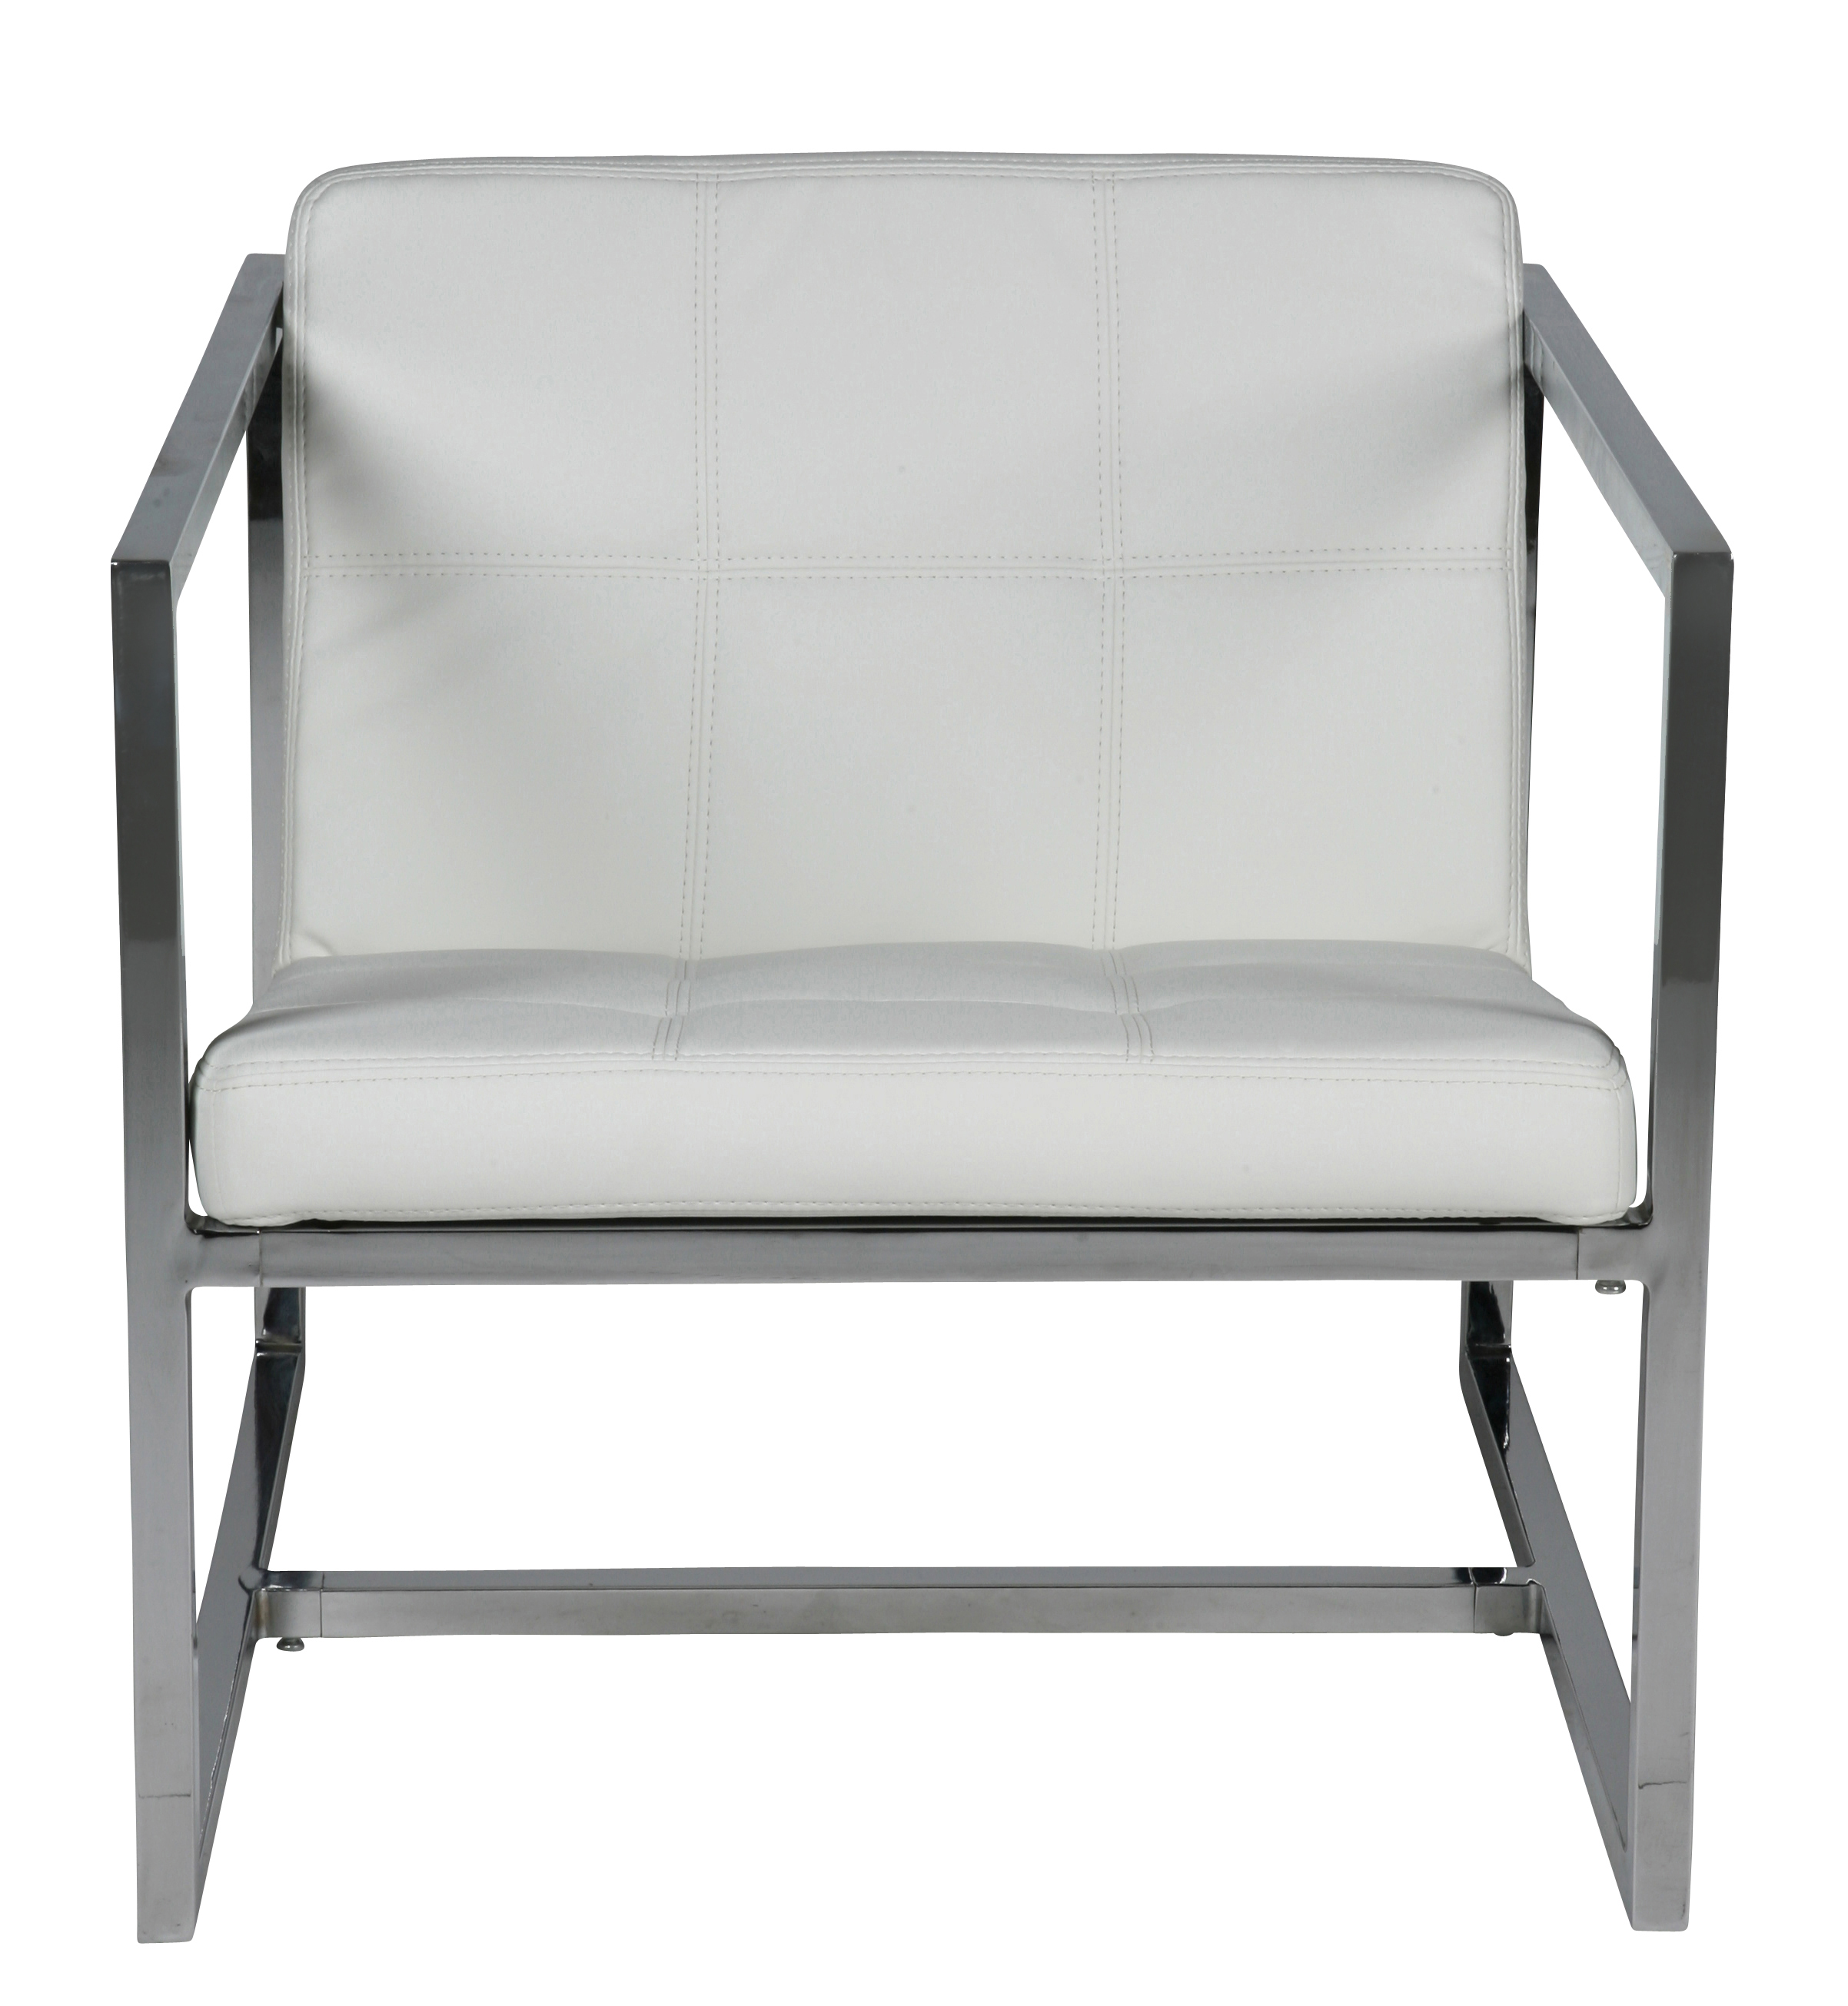 Lisa Chair White Chrome Frame | Whiteline